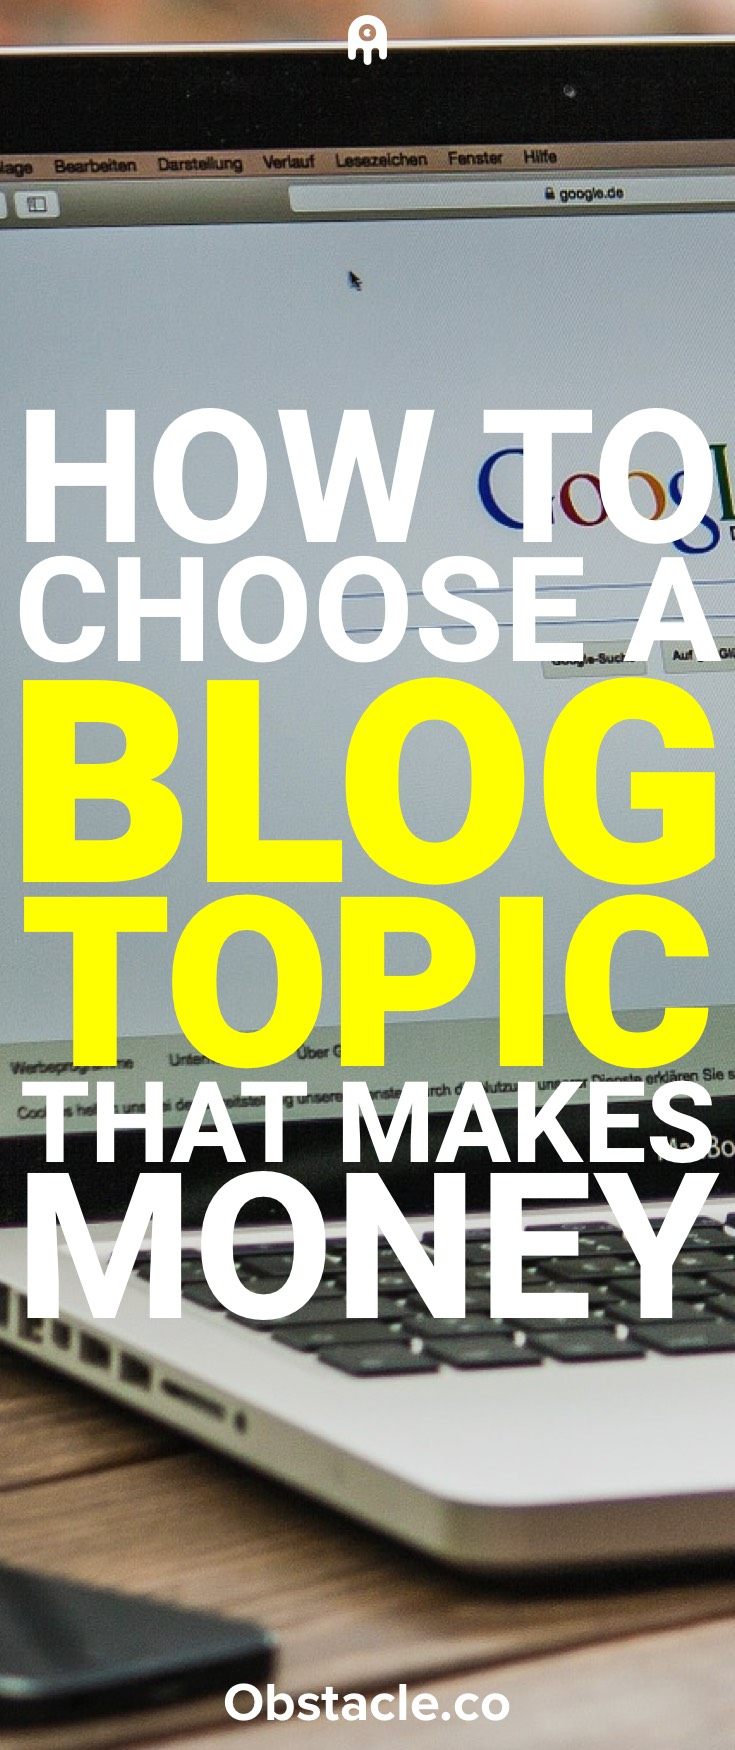 How to Choose a Blog Topic That Makes Money